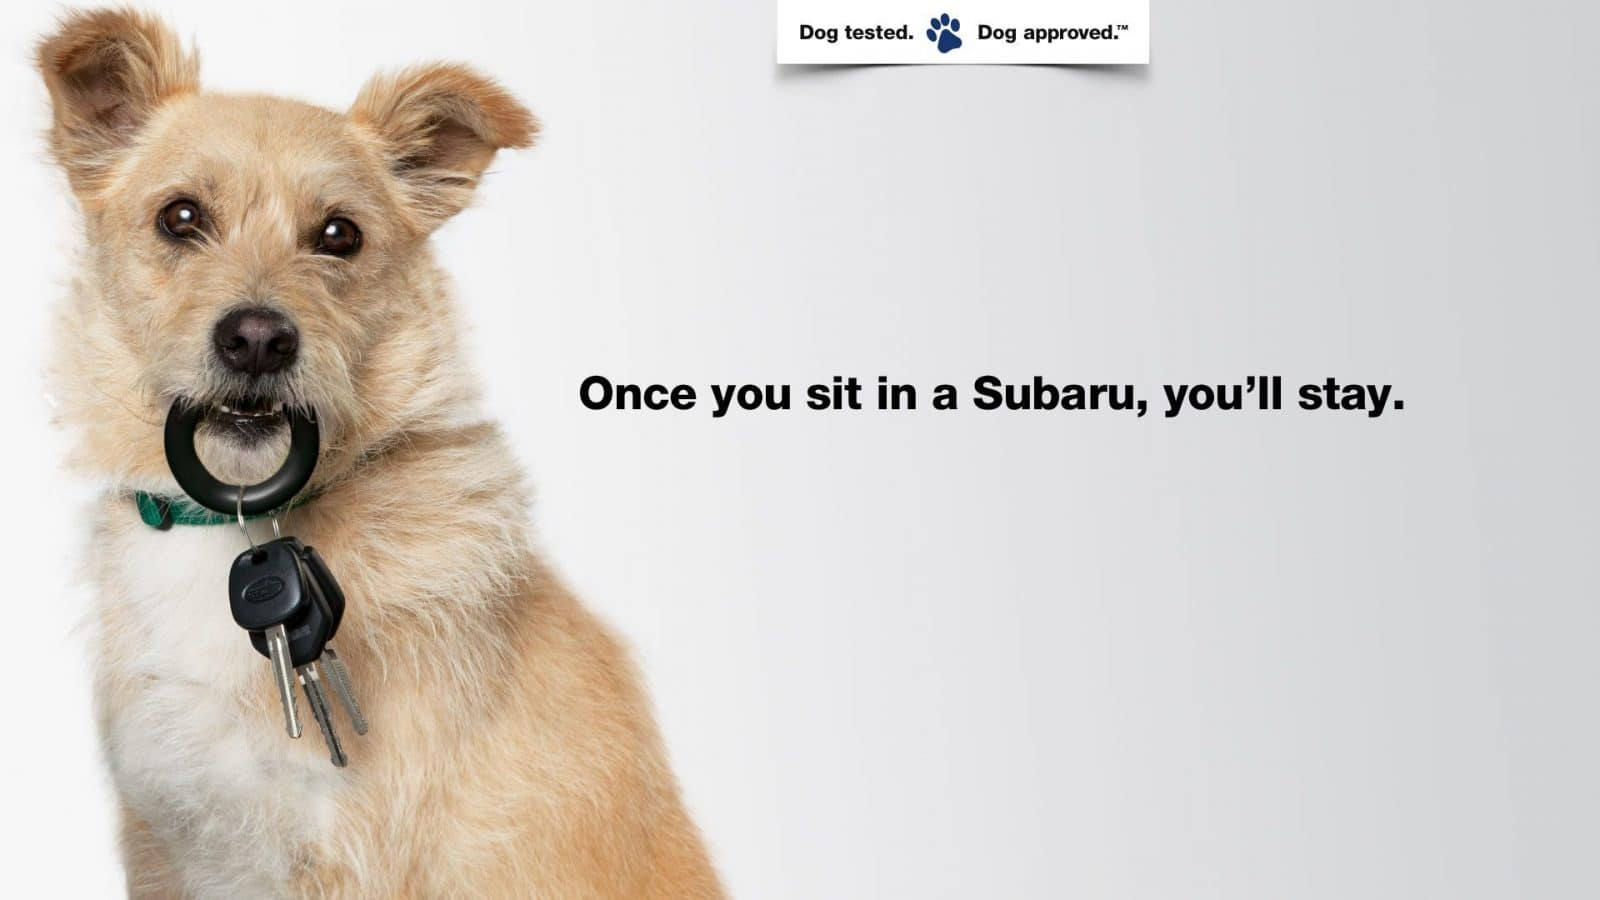 Don't Forget To Download The Subaru App For The Puppy Bowl